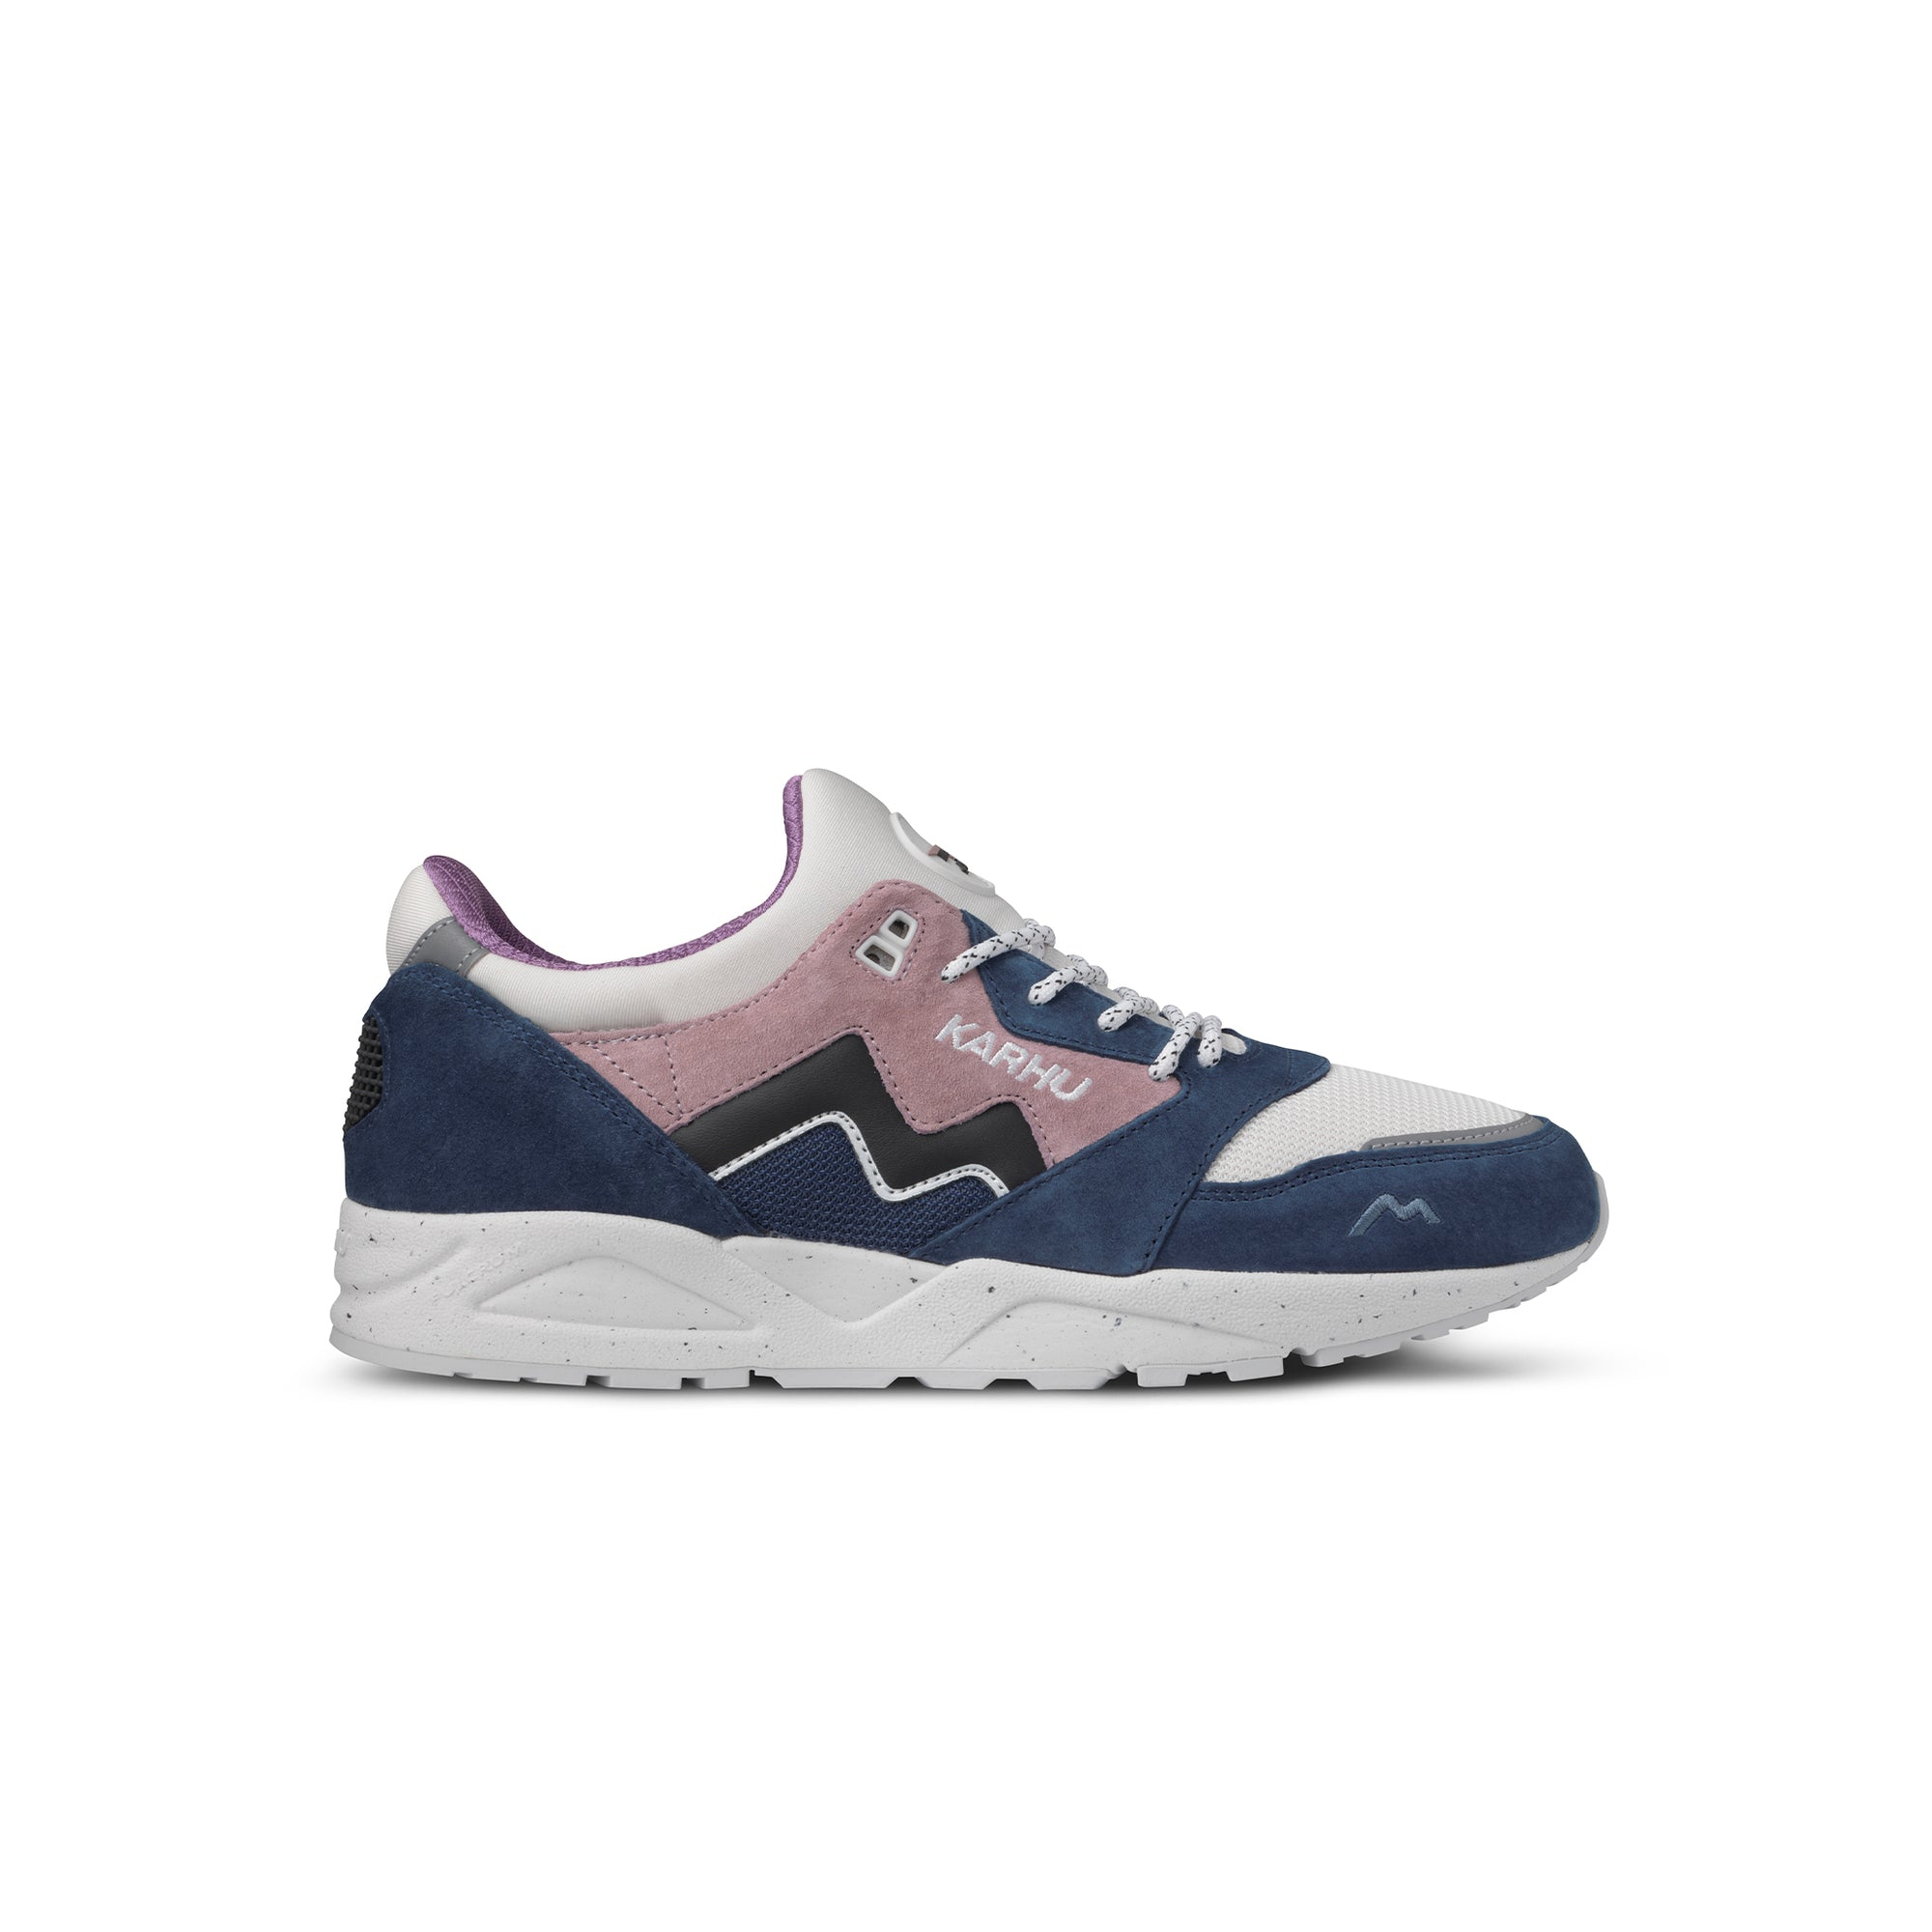 Karhu Aria 95: Ensign Blue / Jet Black - The Union Project